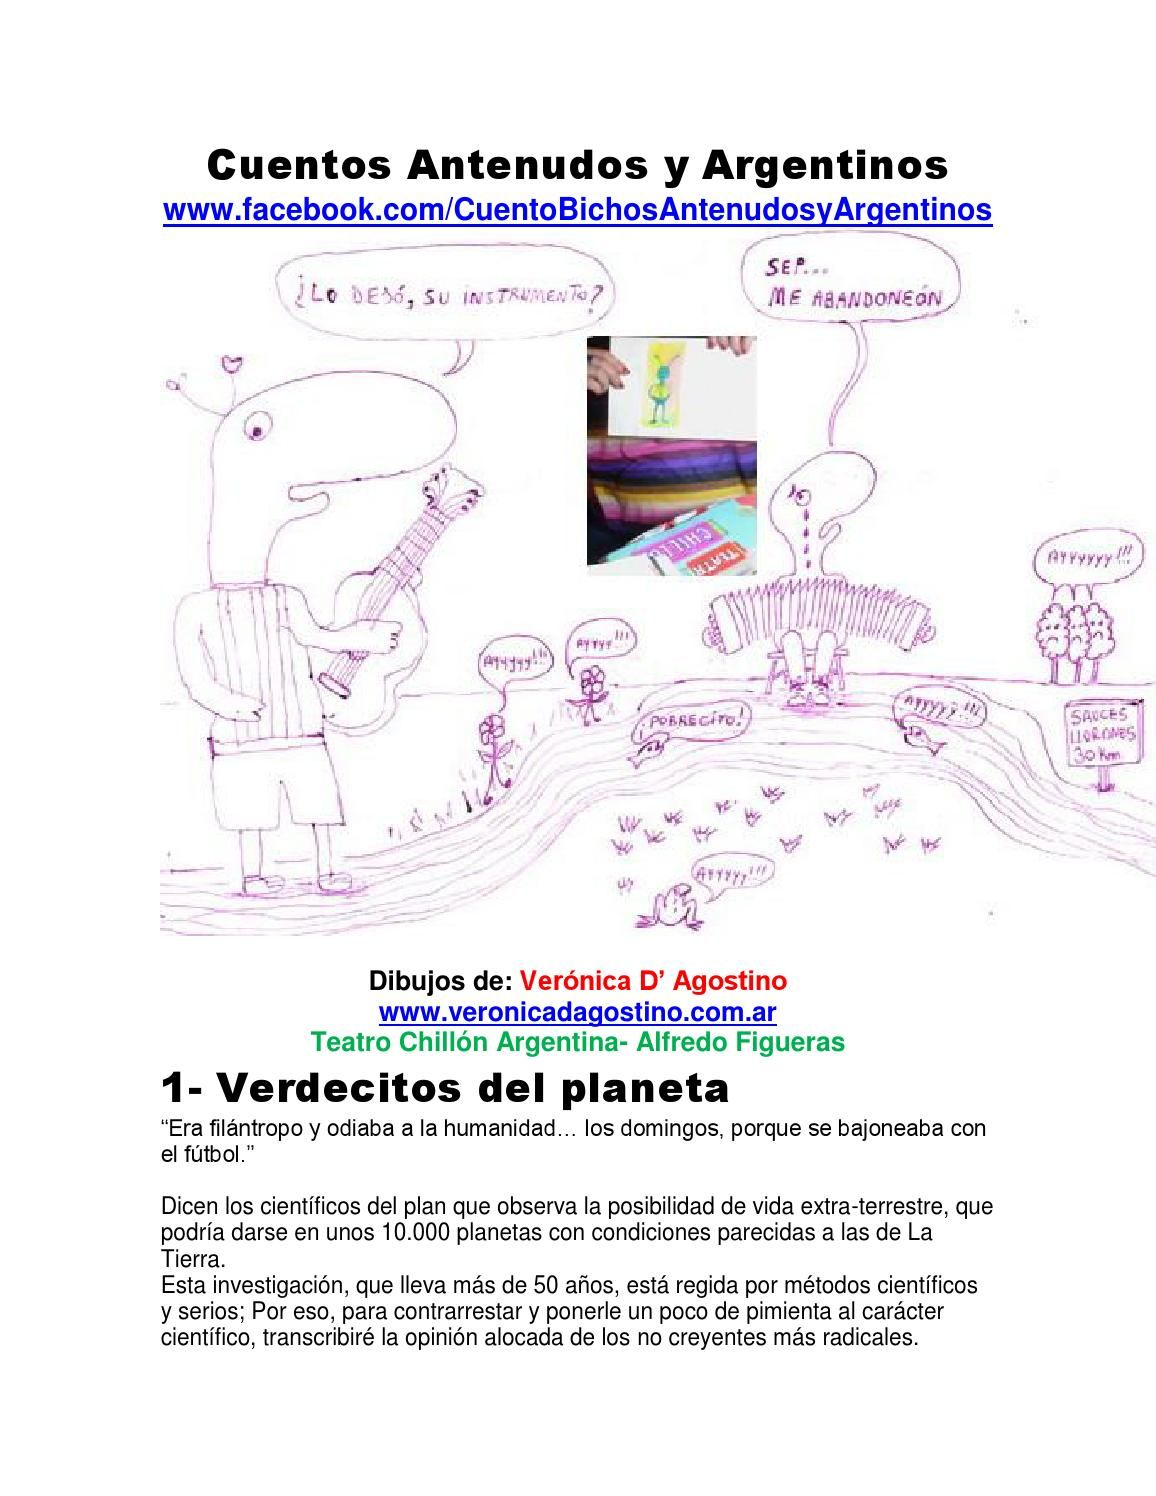 Worksheet. Cuentos argentinos y antenudos  Piano